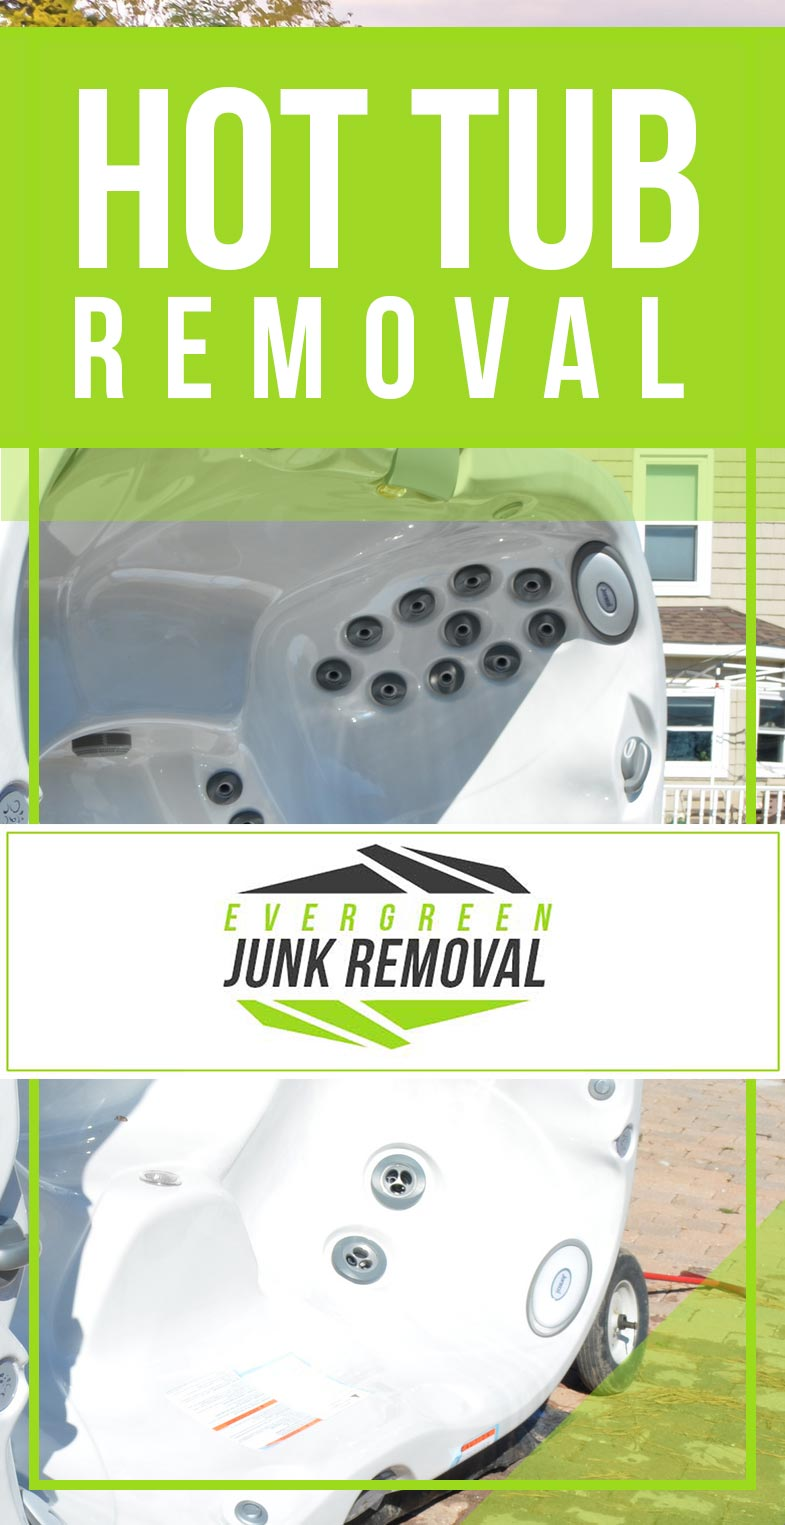 Allen Park Hot Tub Removal